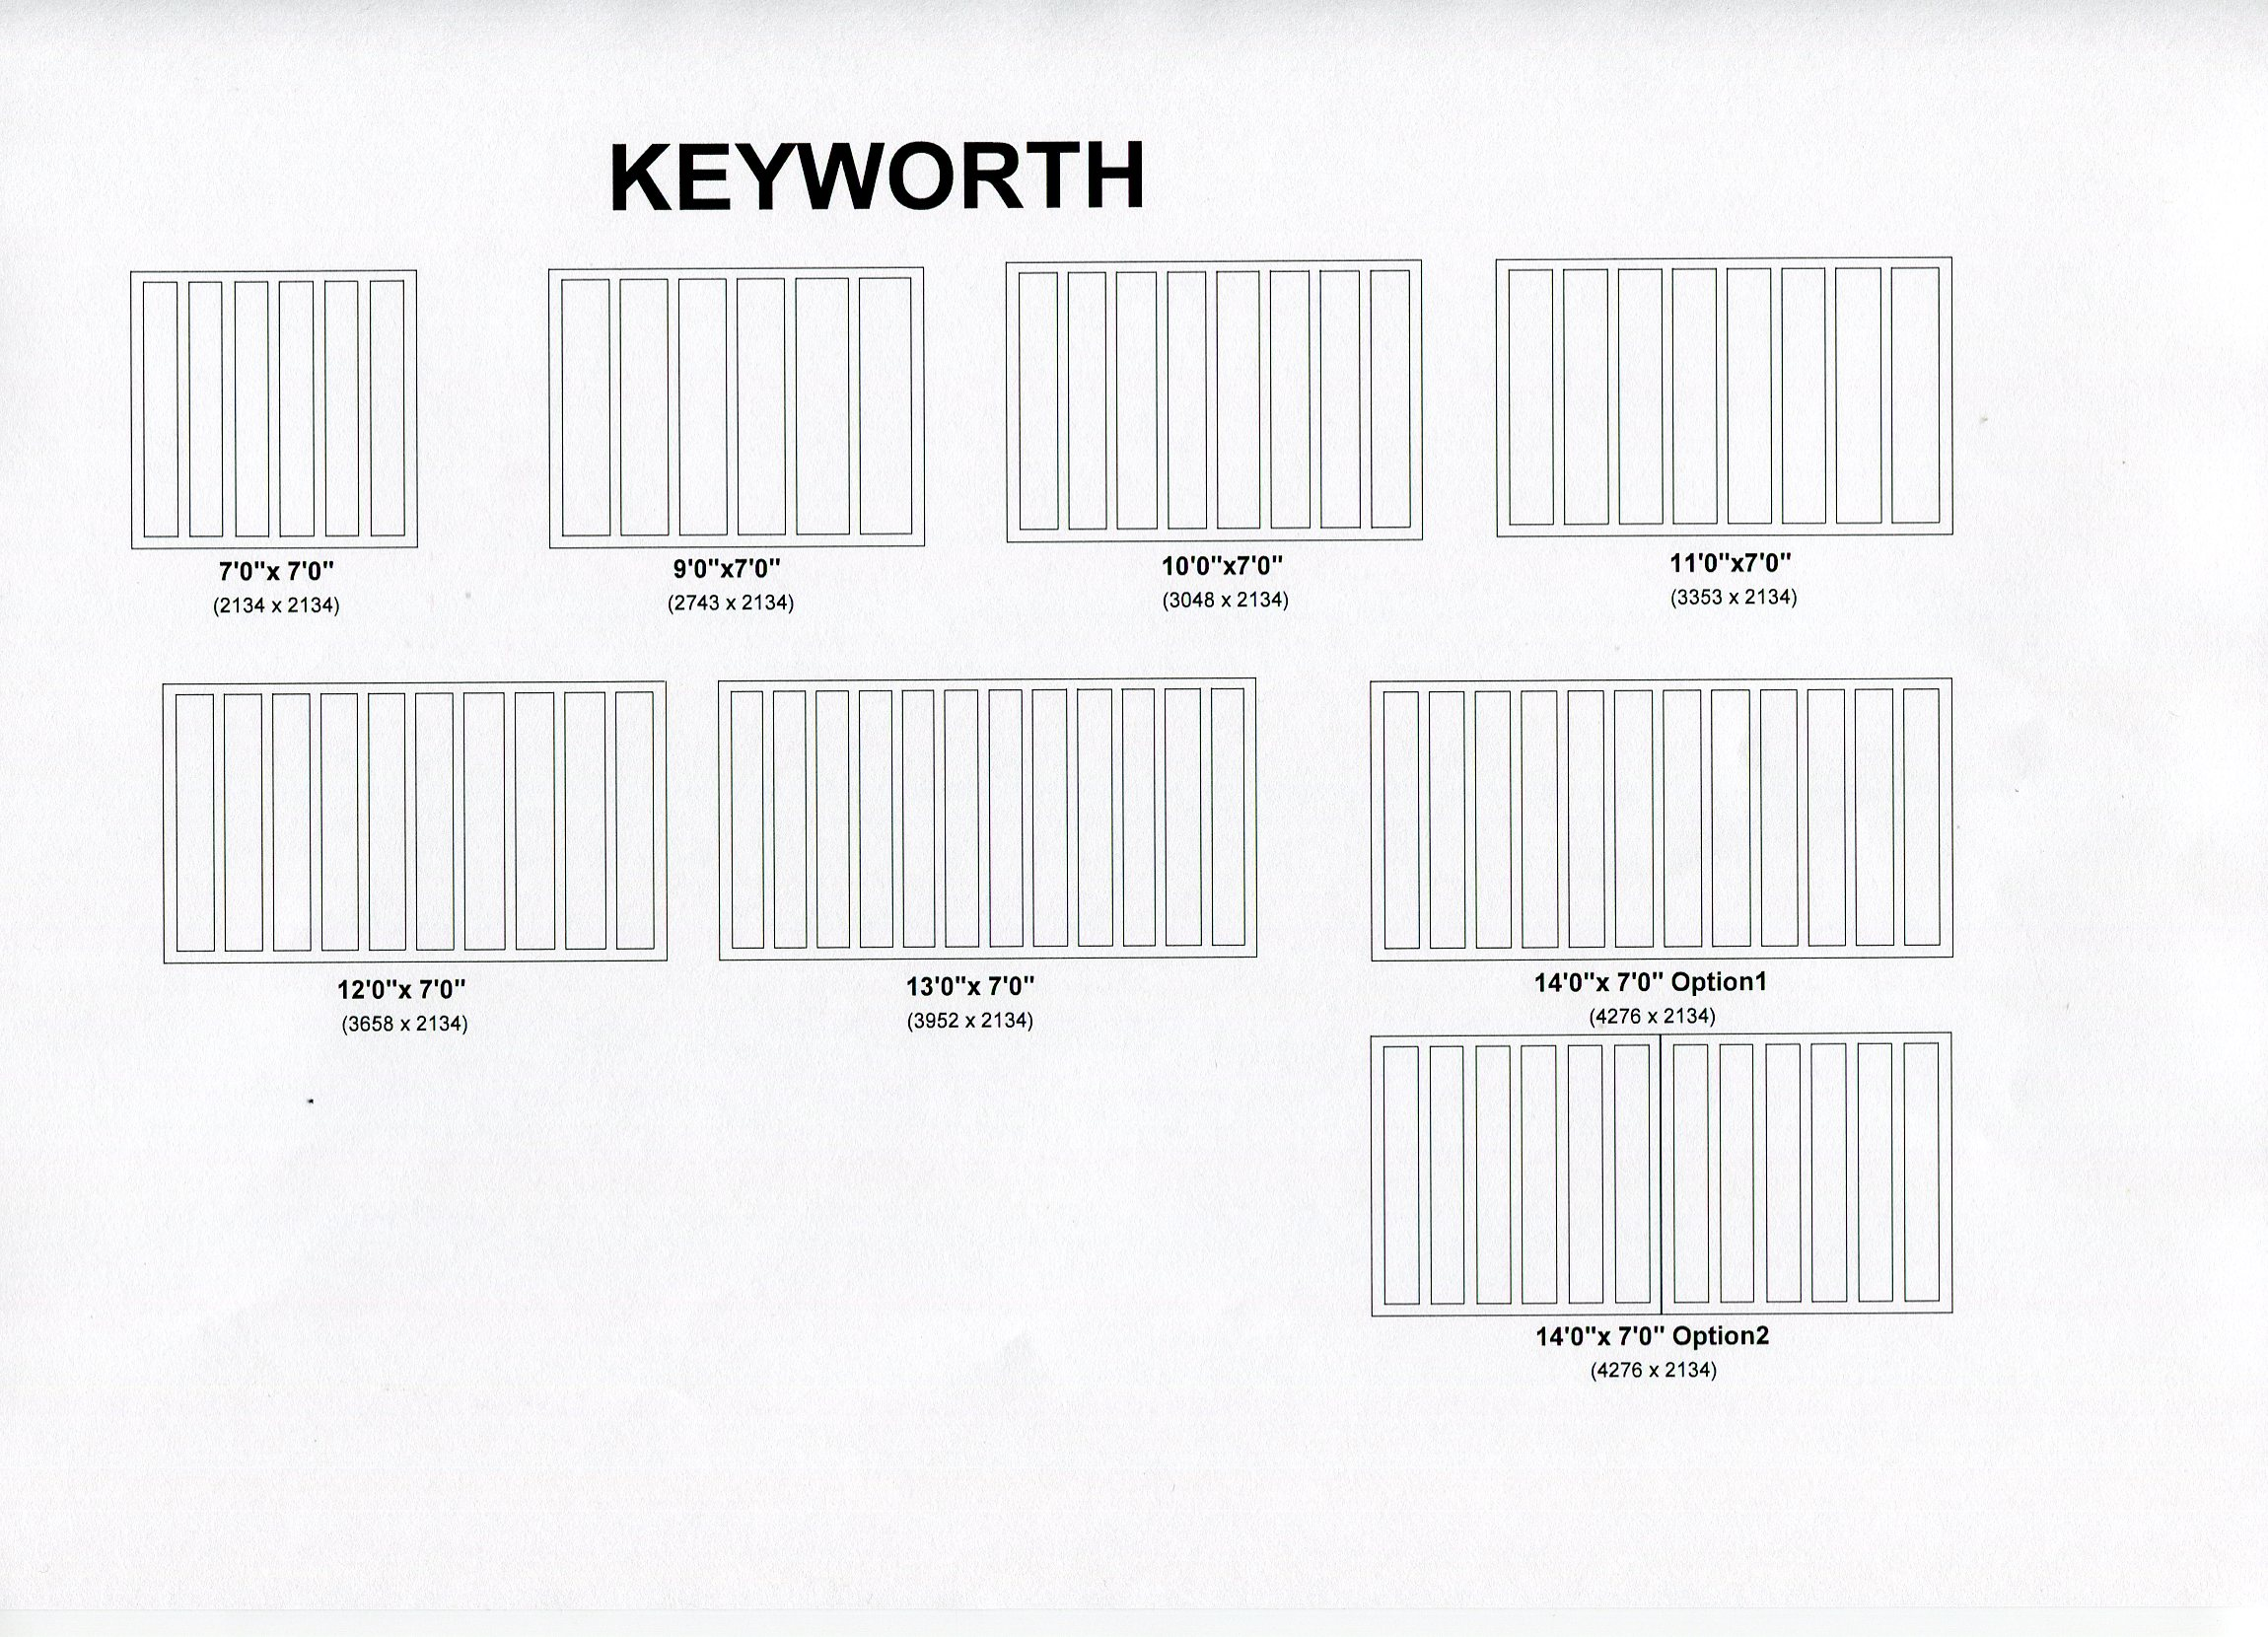 Cedar Door Keyworth design options